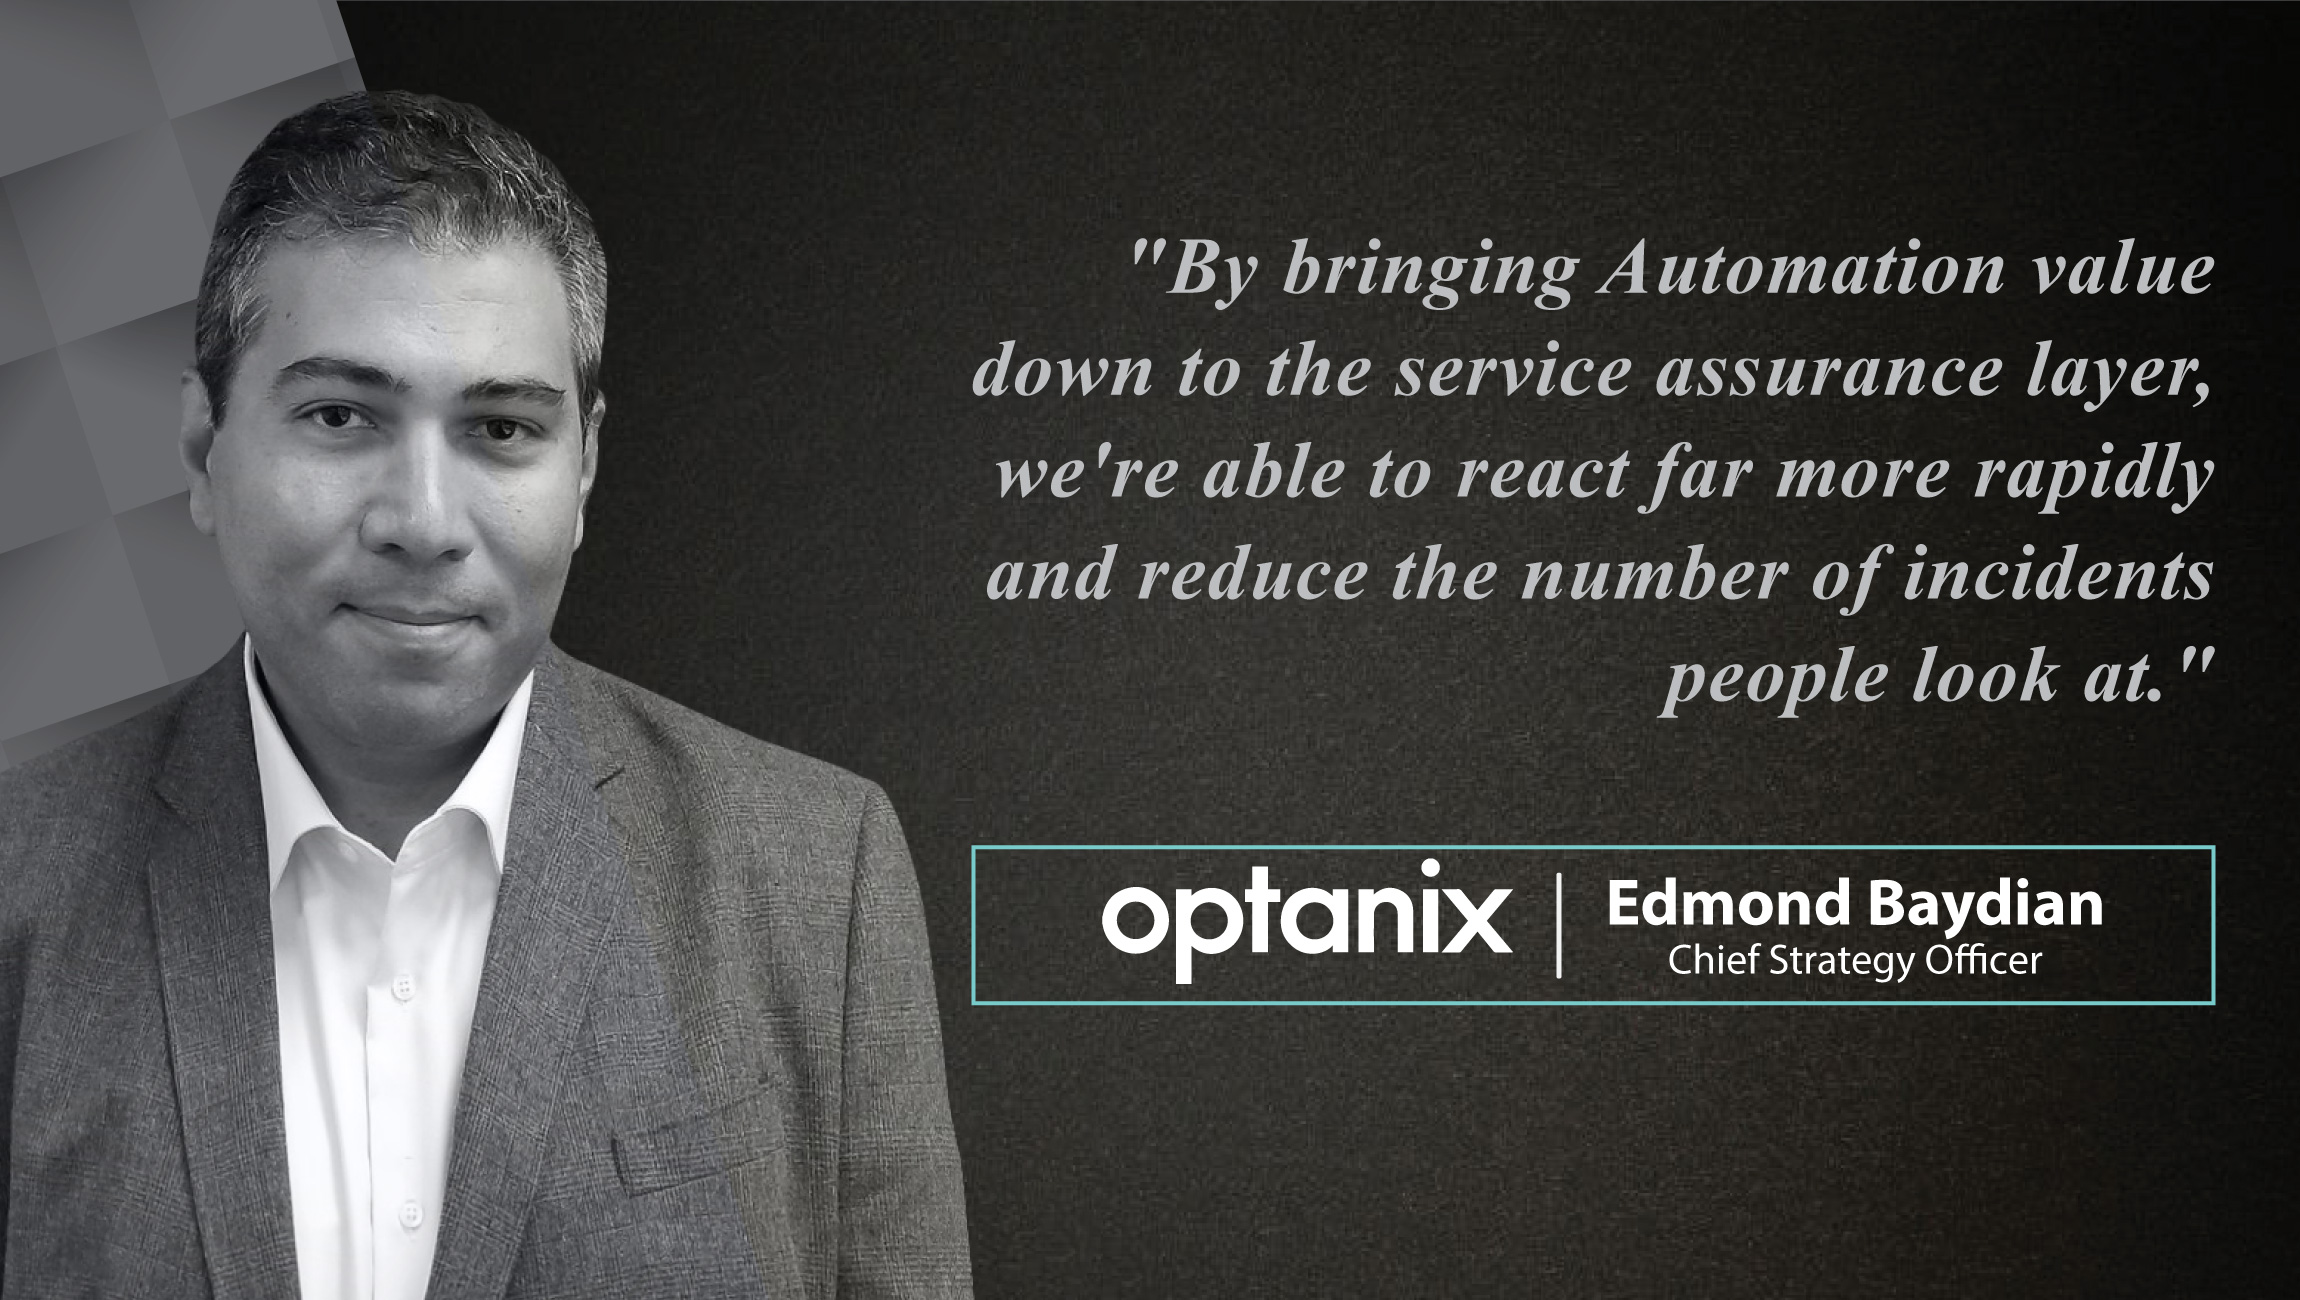 AiThority nterview with Edmond Baydian, Chief Strategy Officer at Optanix